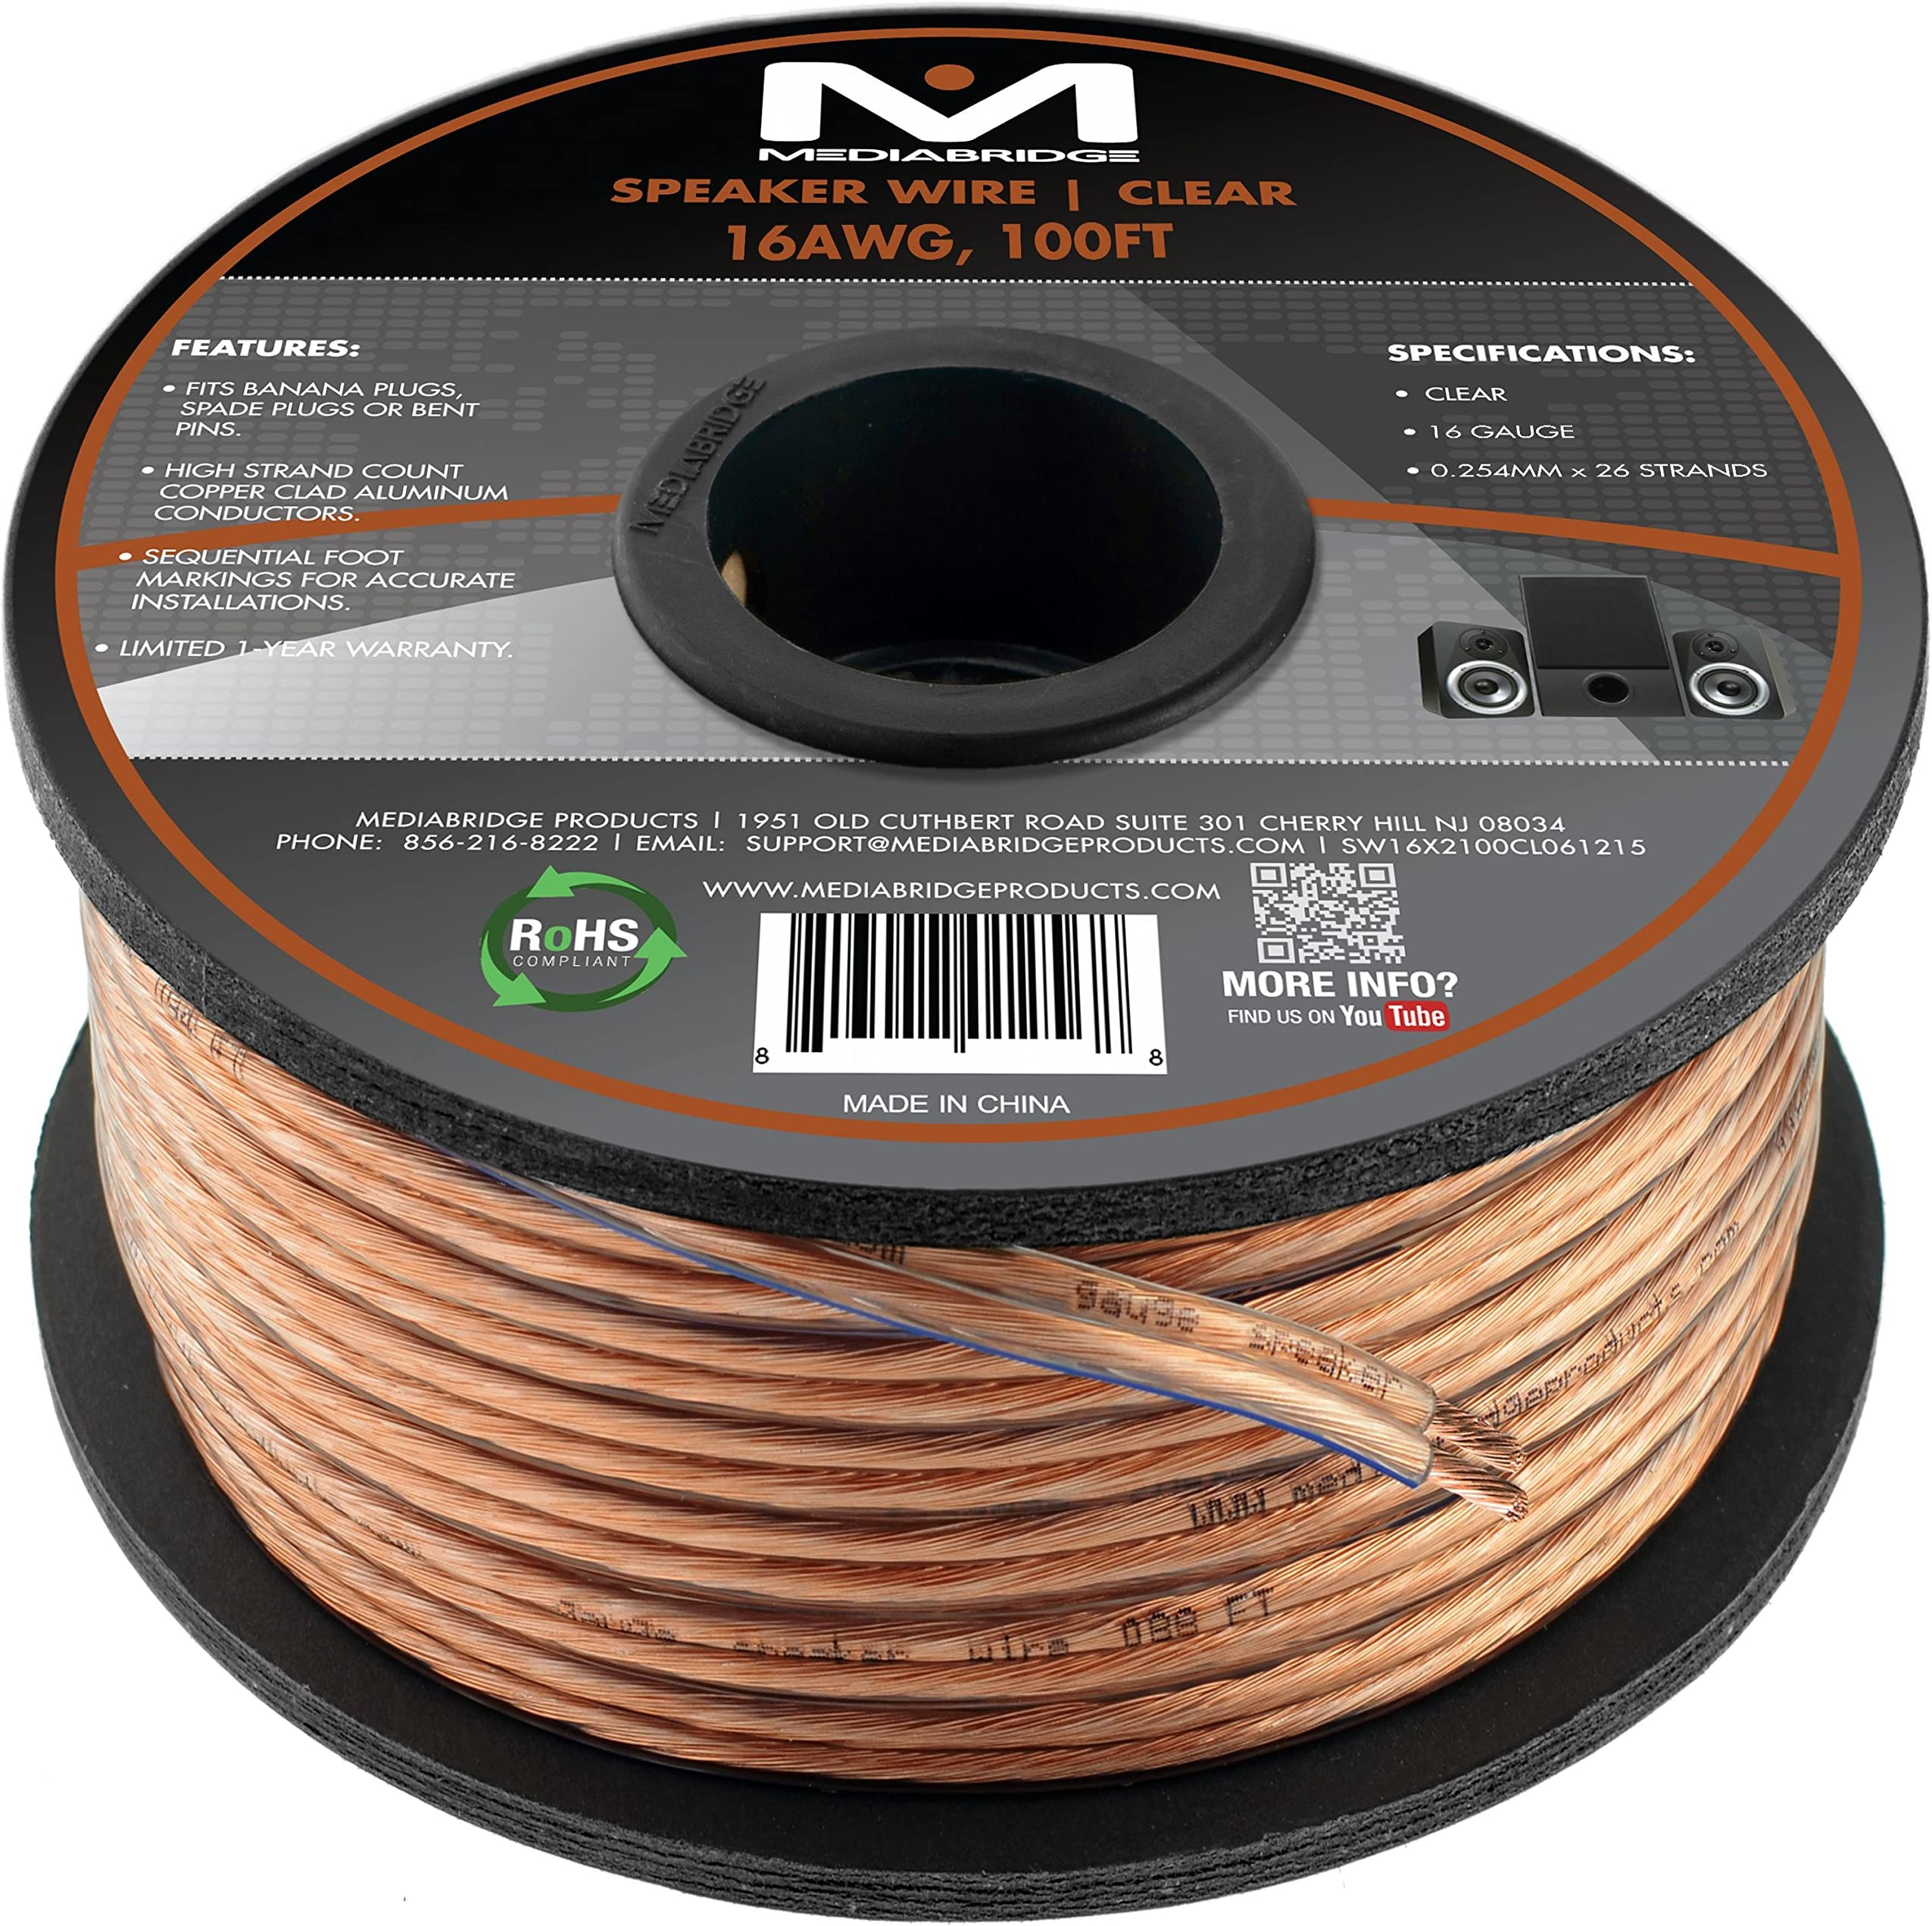 Amazon.com: Mediabridge 16AWG 2-Conductor Speaker Wire (100 Feet, Clear) -  Spooled Design with Sequential Foot Markings (Part# SW-16X2-100-CL):  ElectronicsAmazon.com